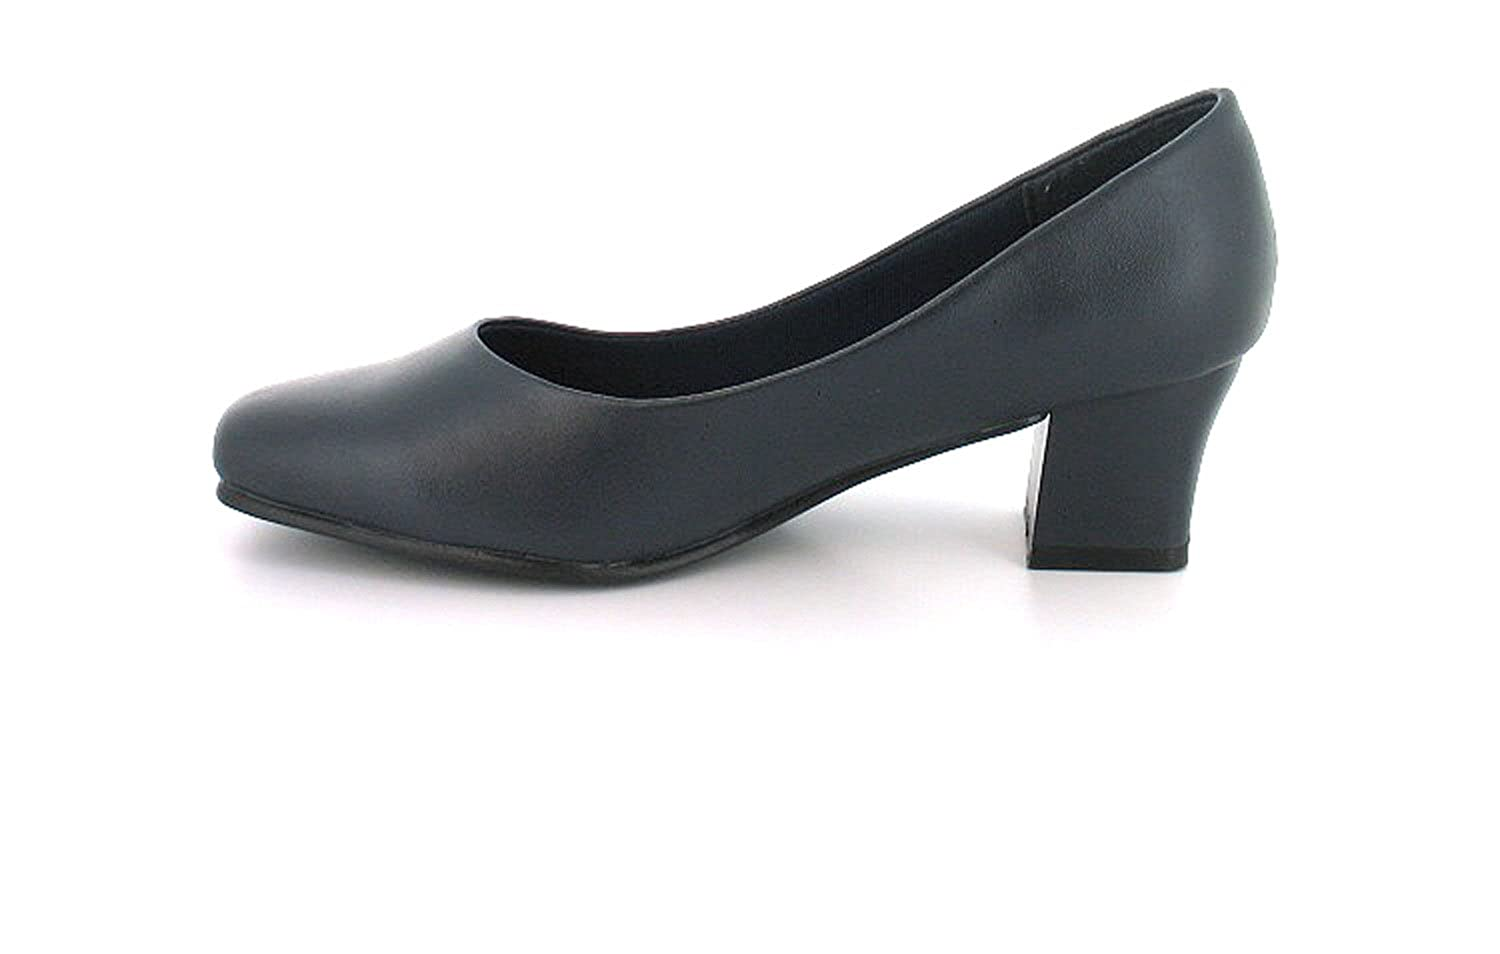 New Womens/Ladies Wide Fitting Court Shoes.(4.5Cm Heel) - Navy Blue - UK  SIZES 3-8: Amazon.co.uk: Shoes & Bags